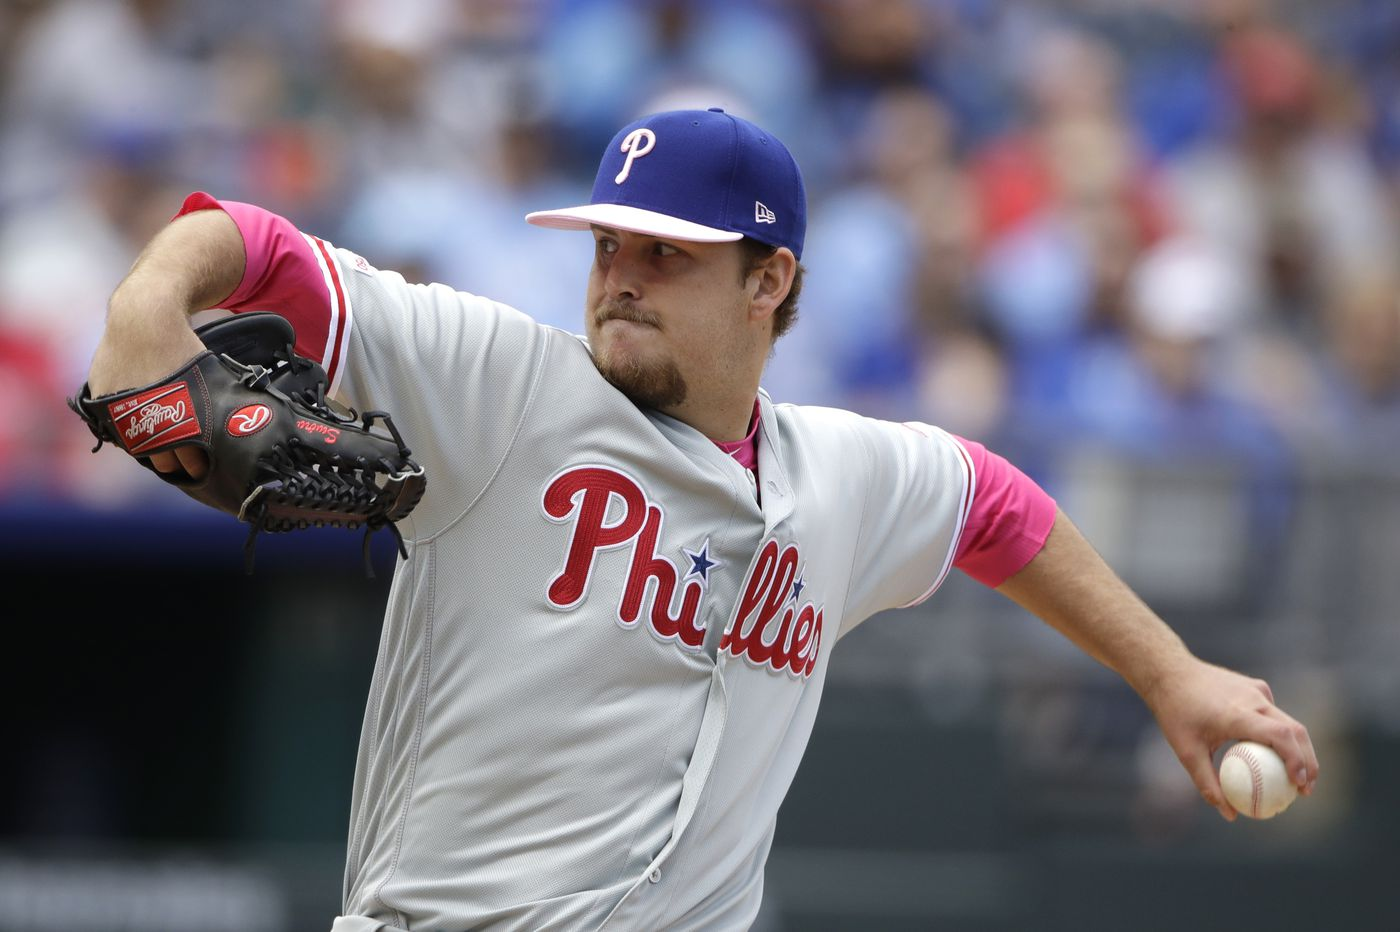 Phillies rookie Cole Irvin sails through seven innings to win major-league debut, 6-1, over Royals